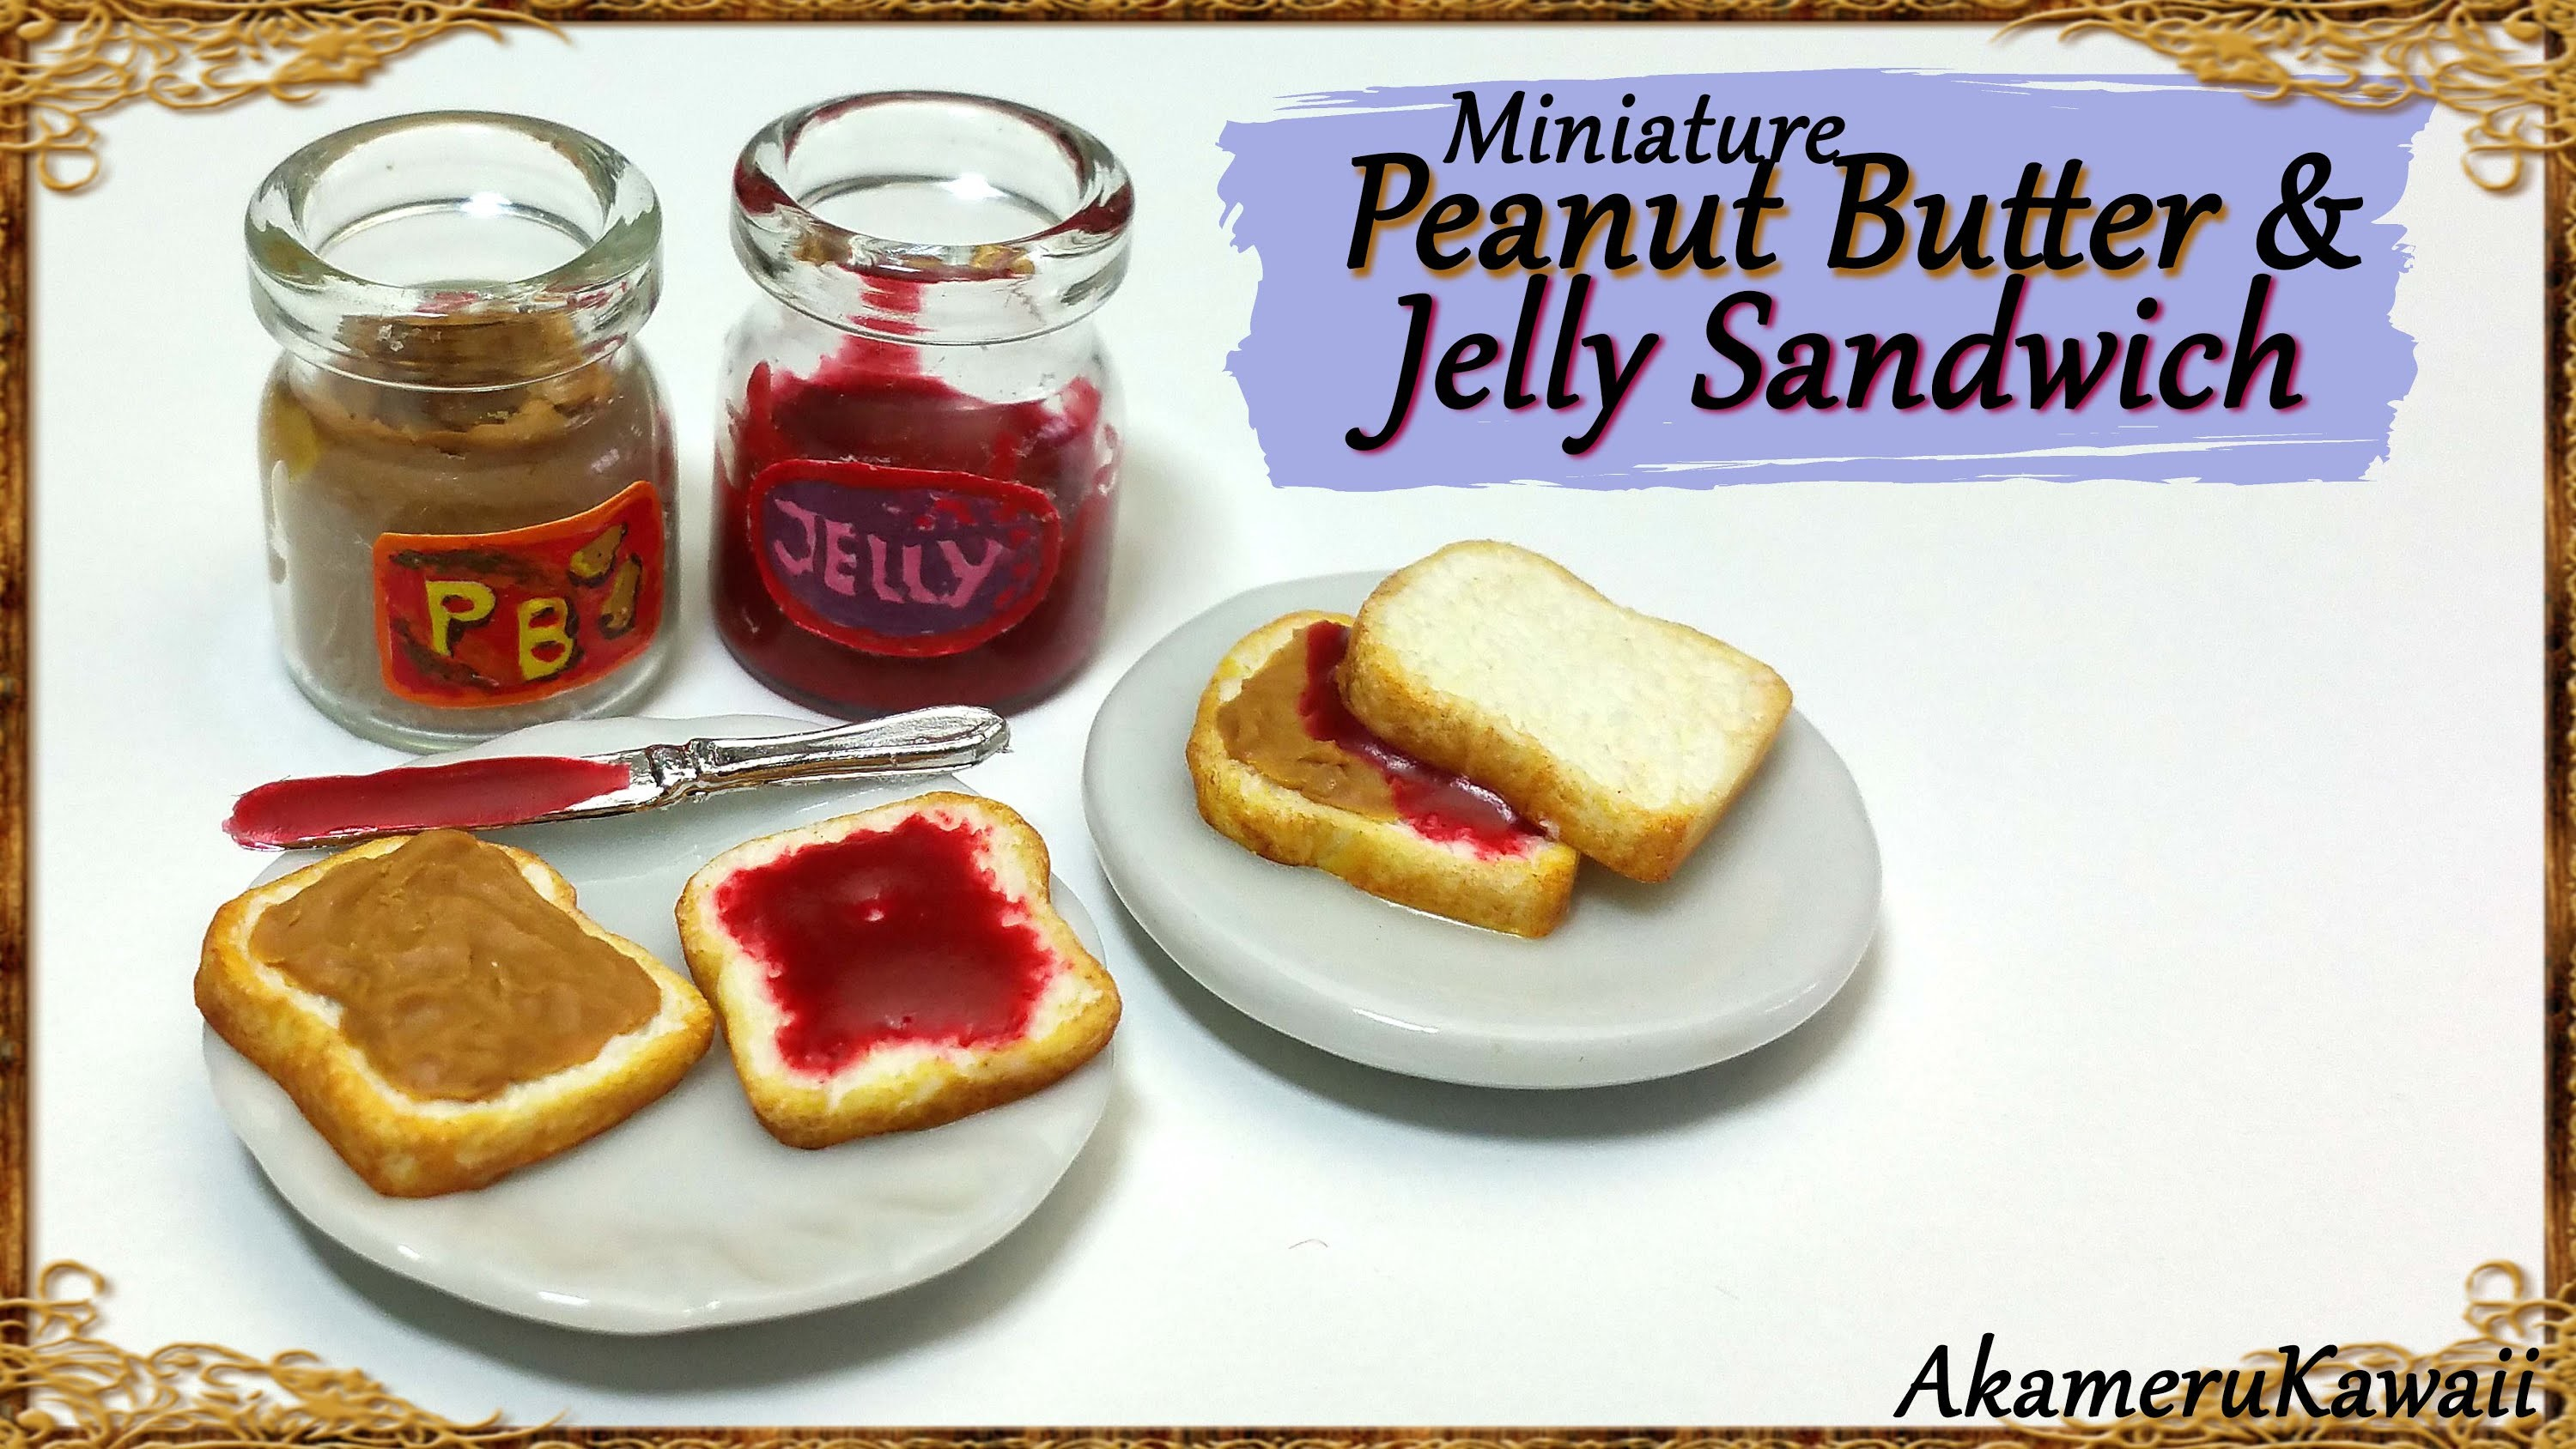 Cute, Miniature Peanut Butter & Jelly Sandwiches - Polymer Clay Tutorial